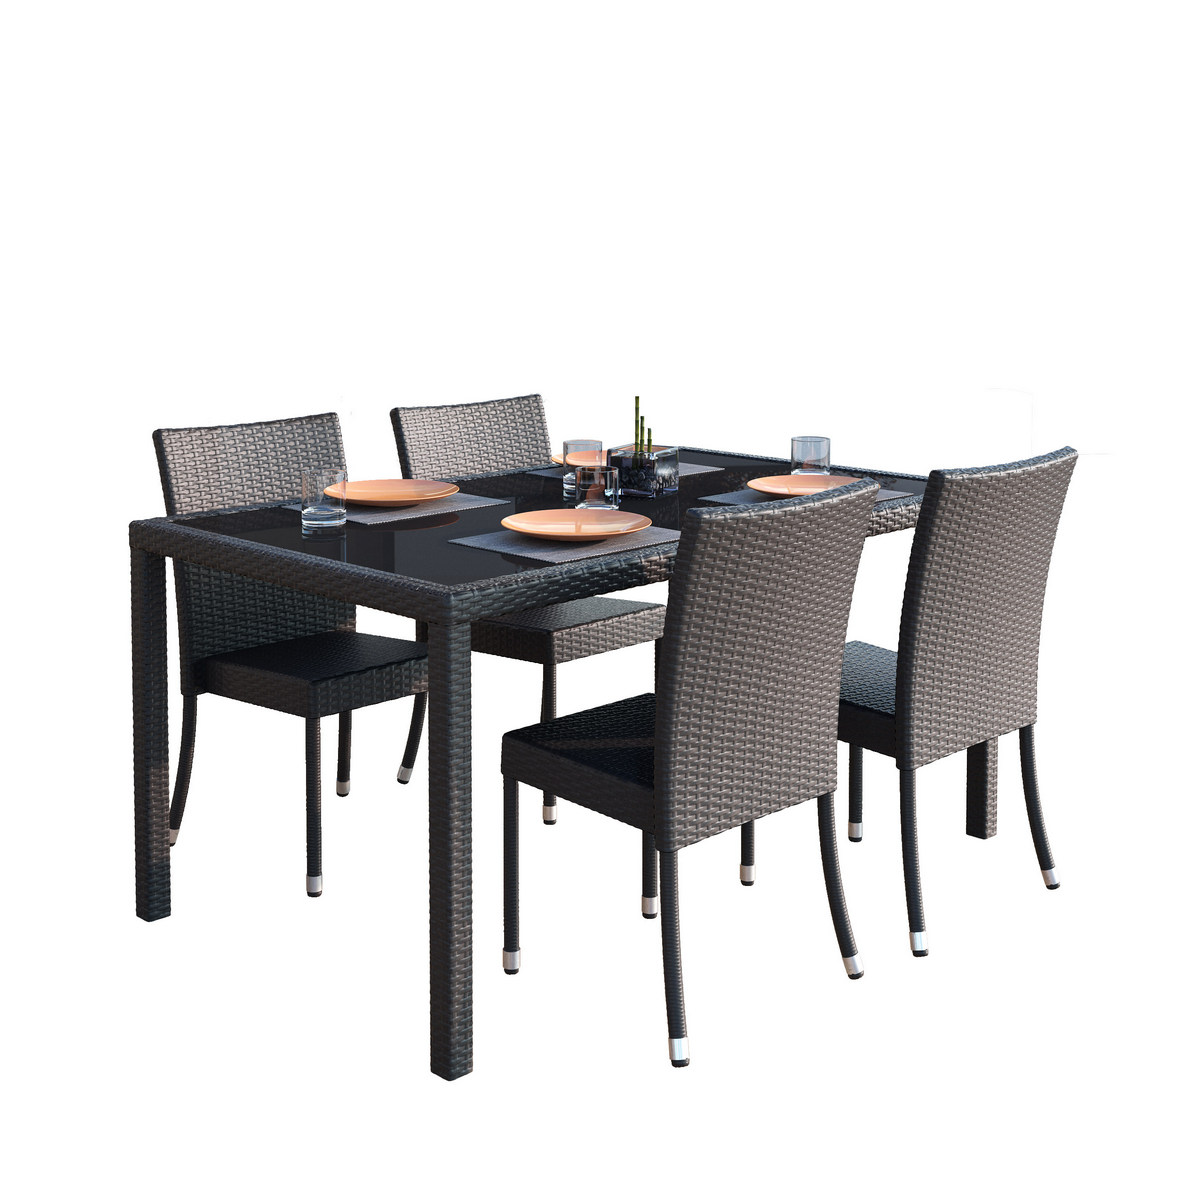 Corliving Ppt Terrace Patio Dining Set Charcoal Black Rope Weave